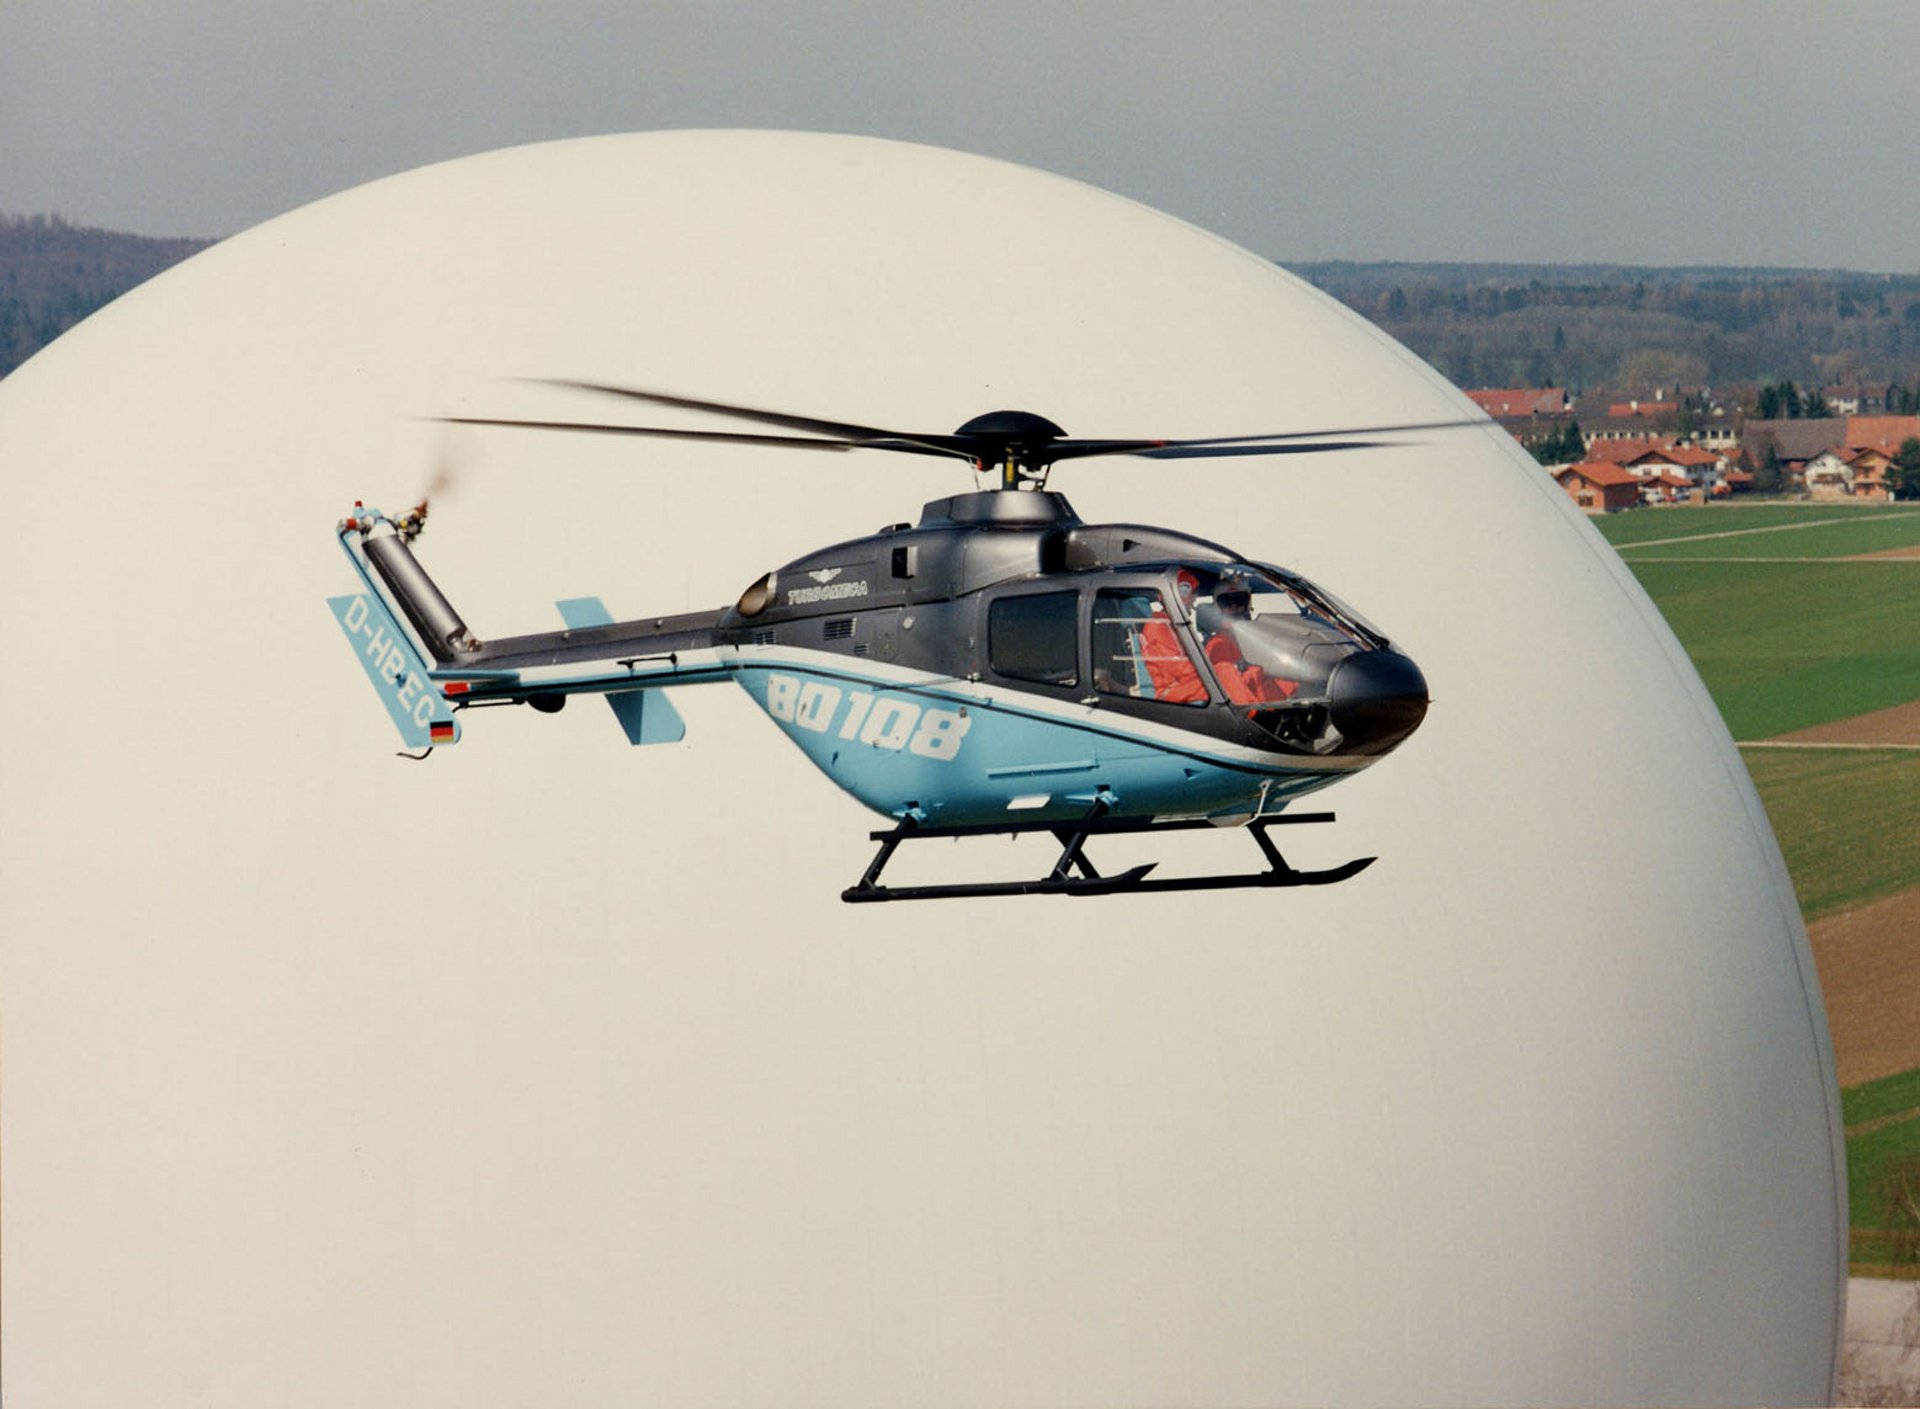 The history of Airbus Helicopters